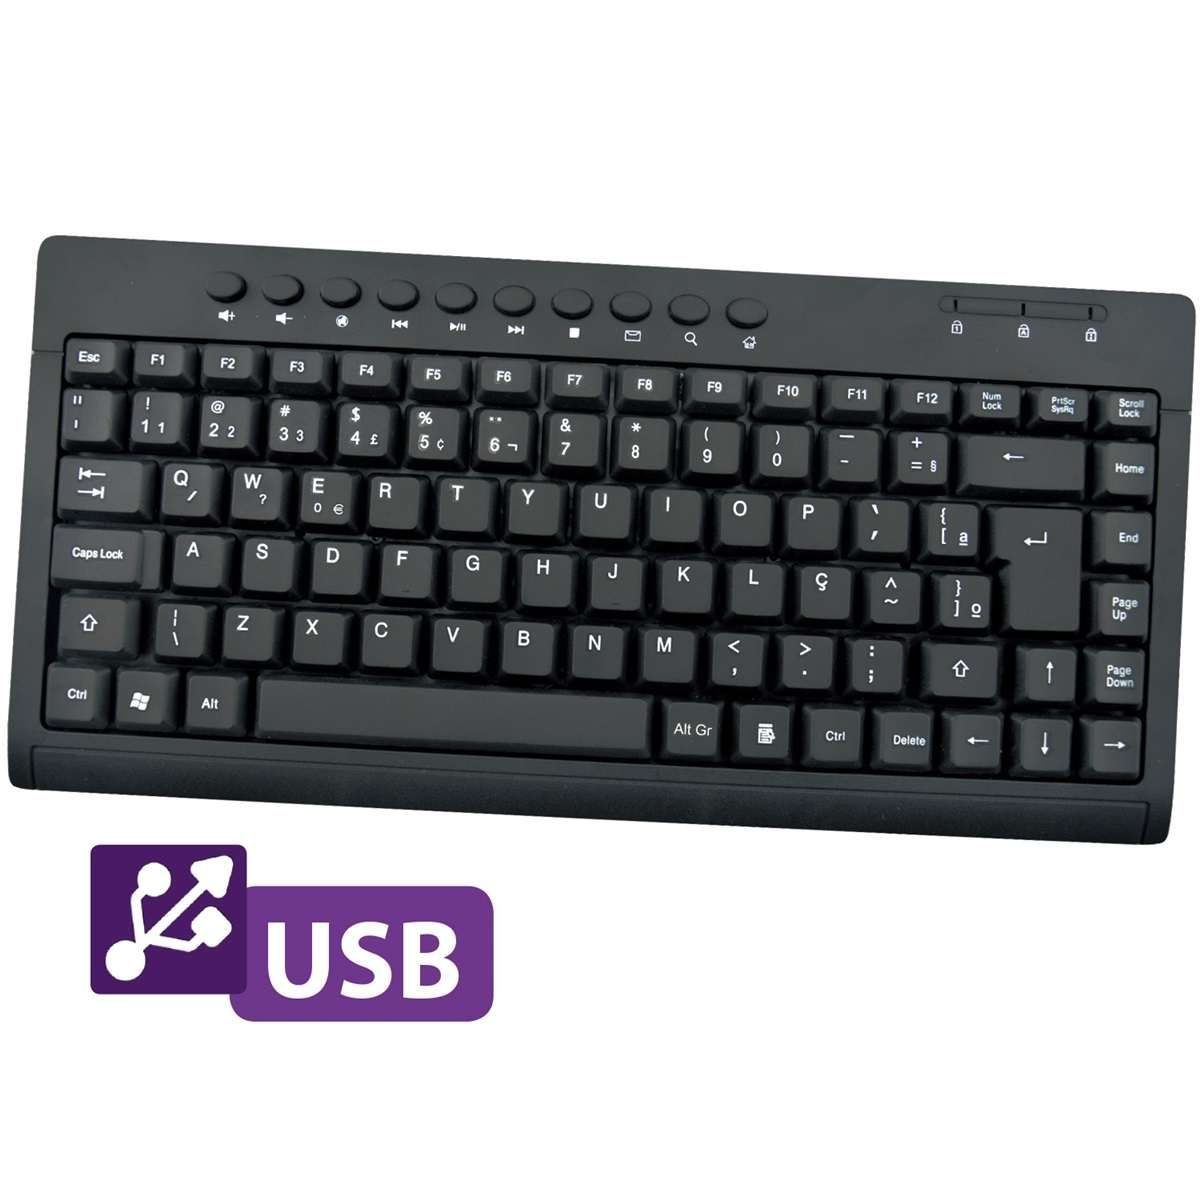 Teclado Mini Multimídia USB Preto 0084 - Bright